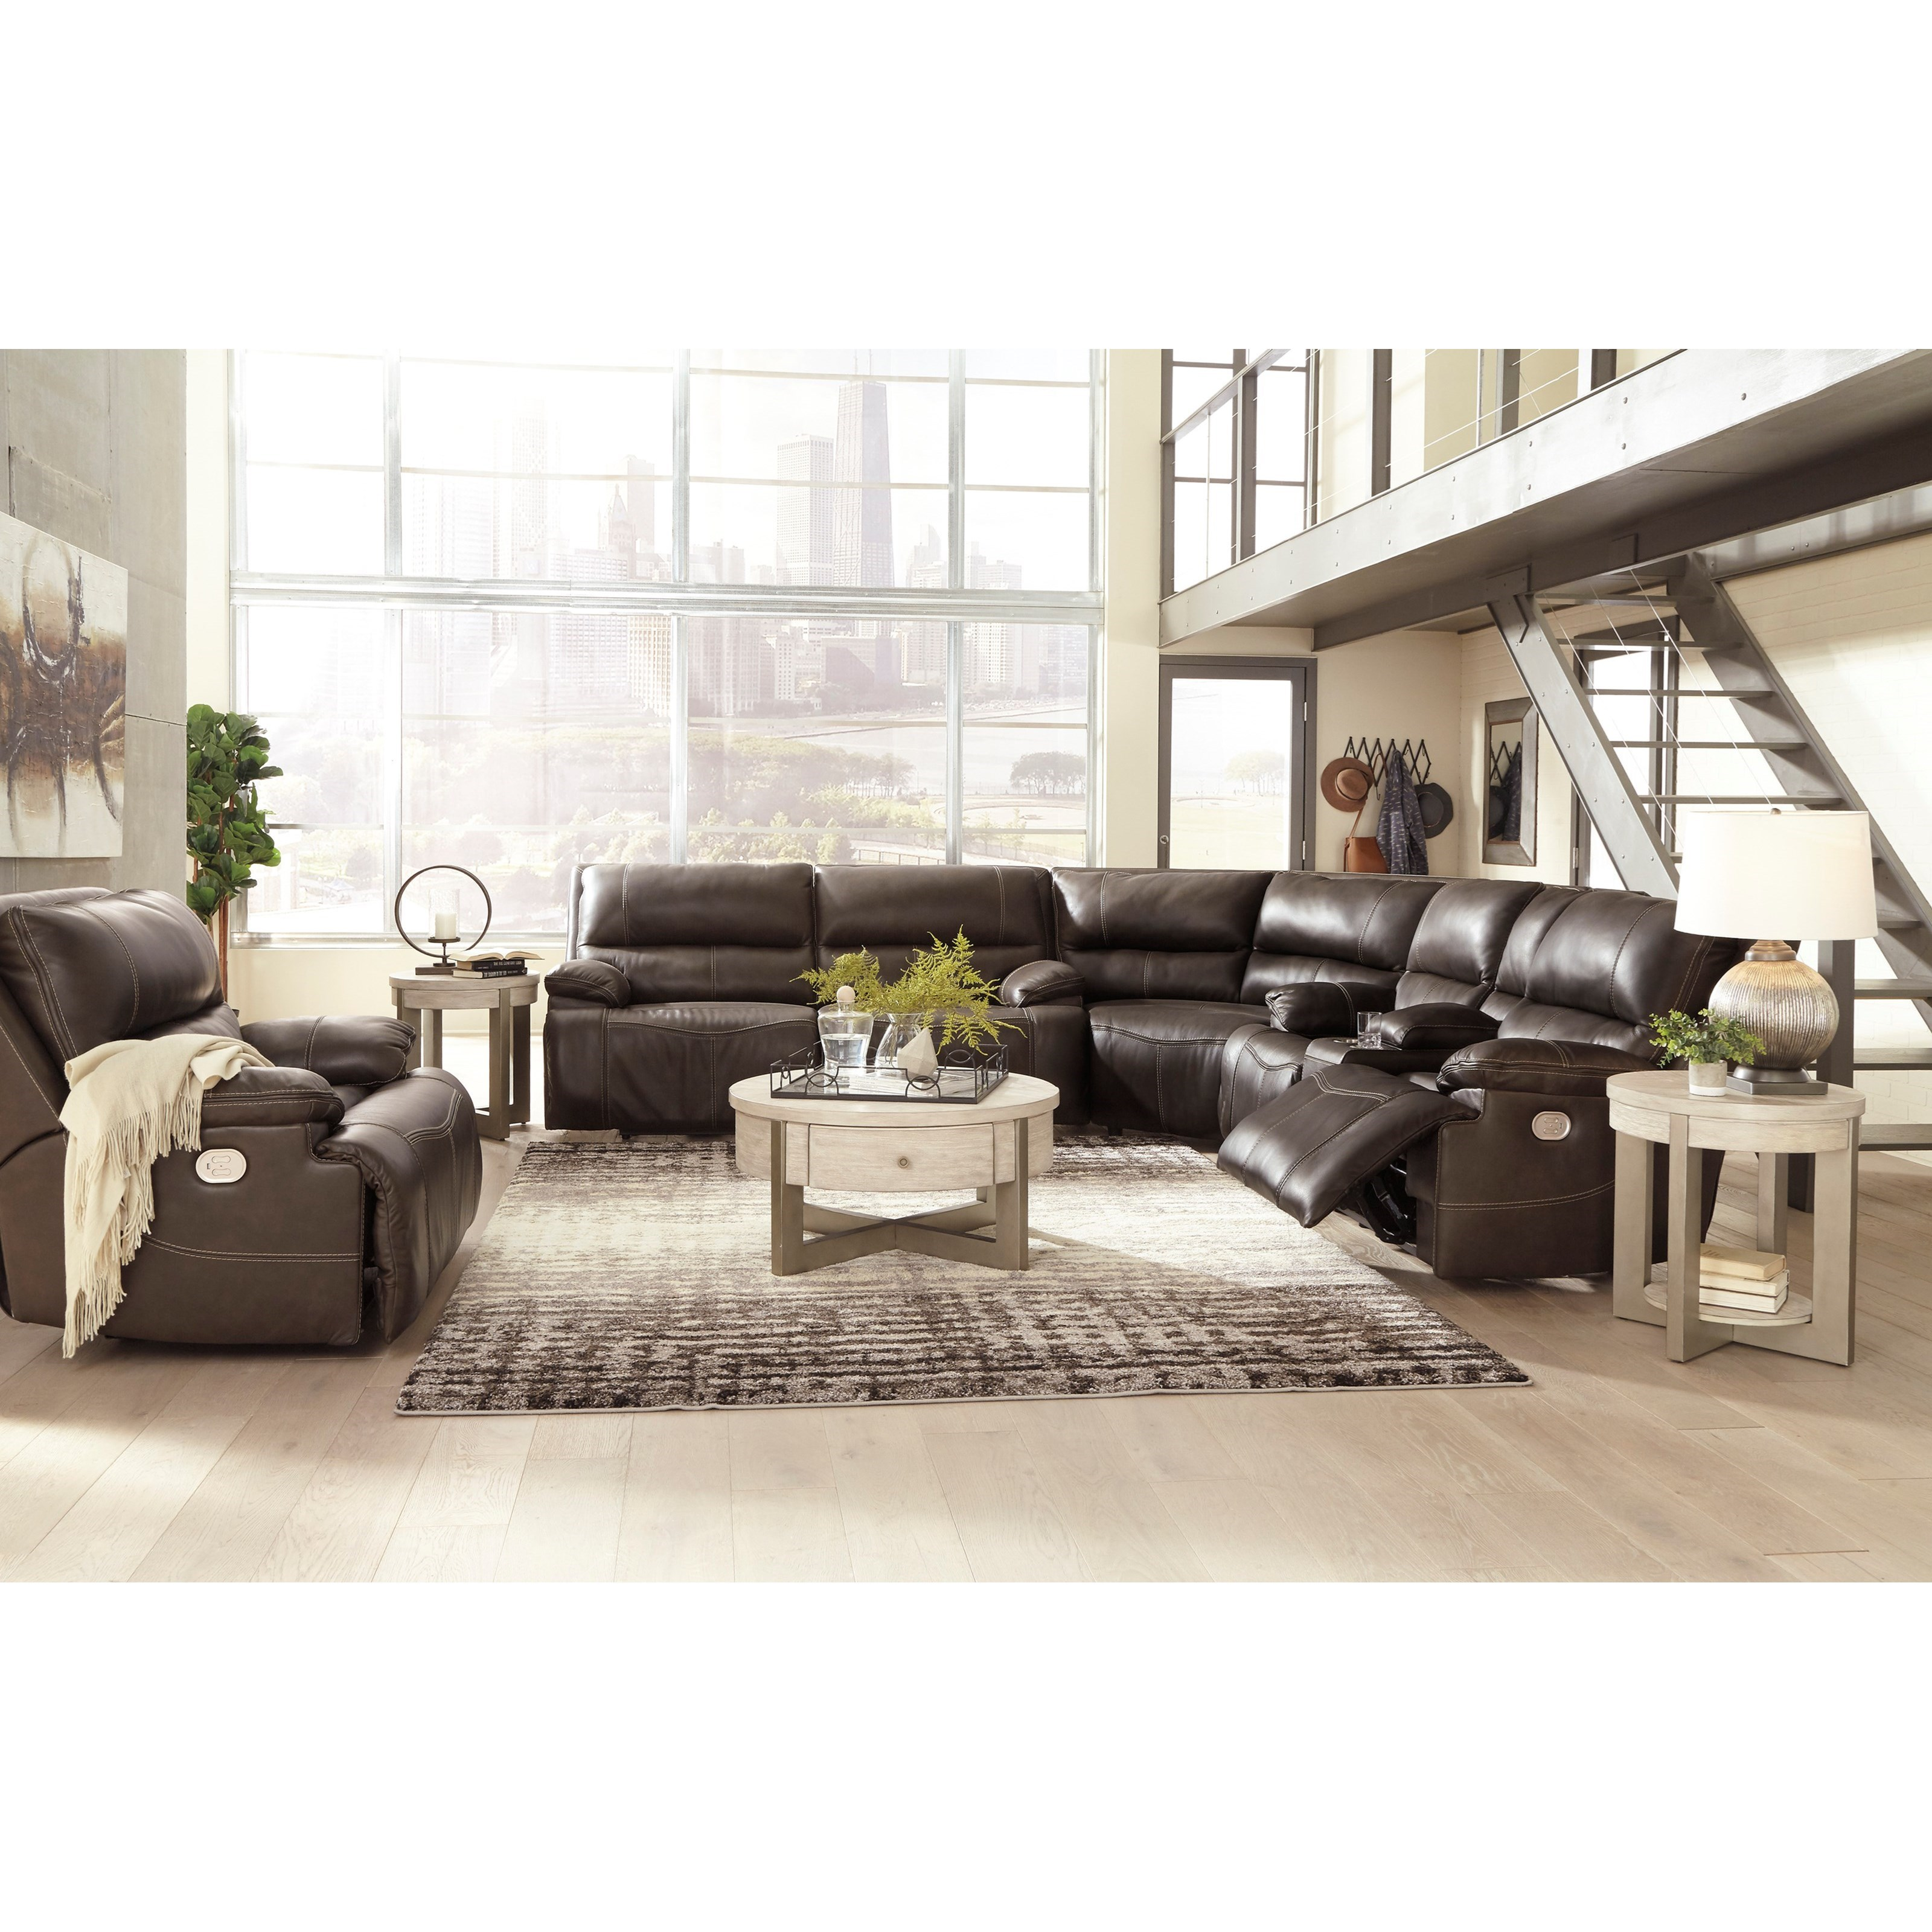 Ricmen Power Reclining Living Room Group by Signature Design by Ashley at Godby Home Furnishings